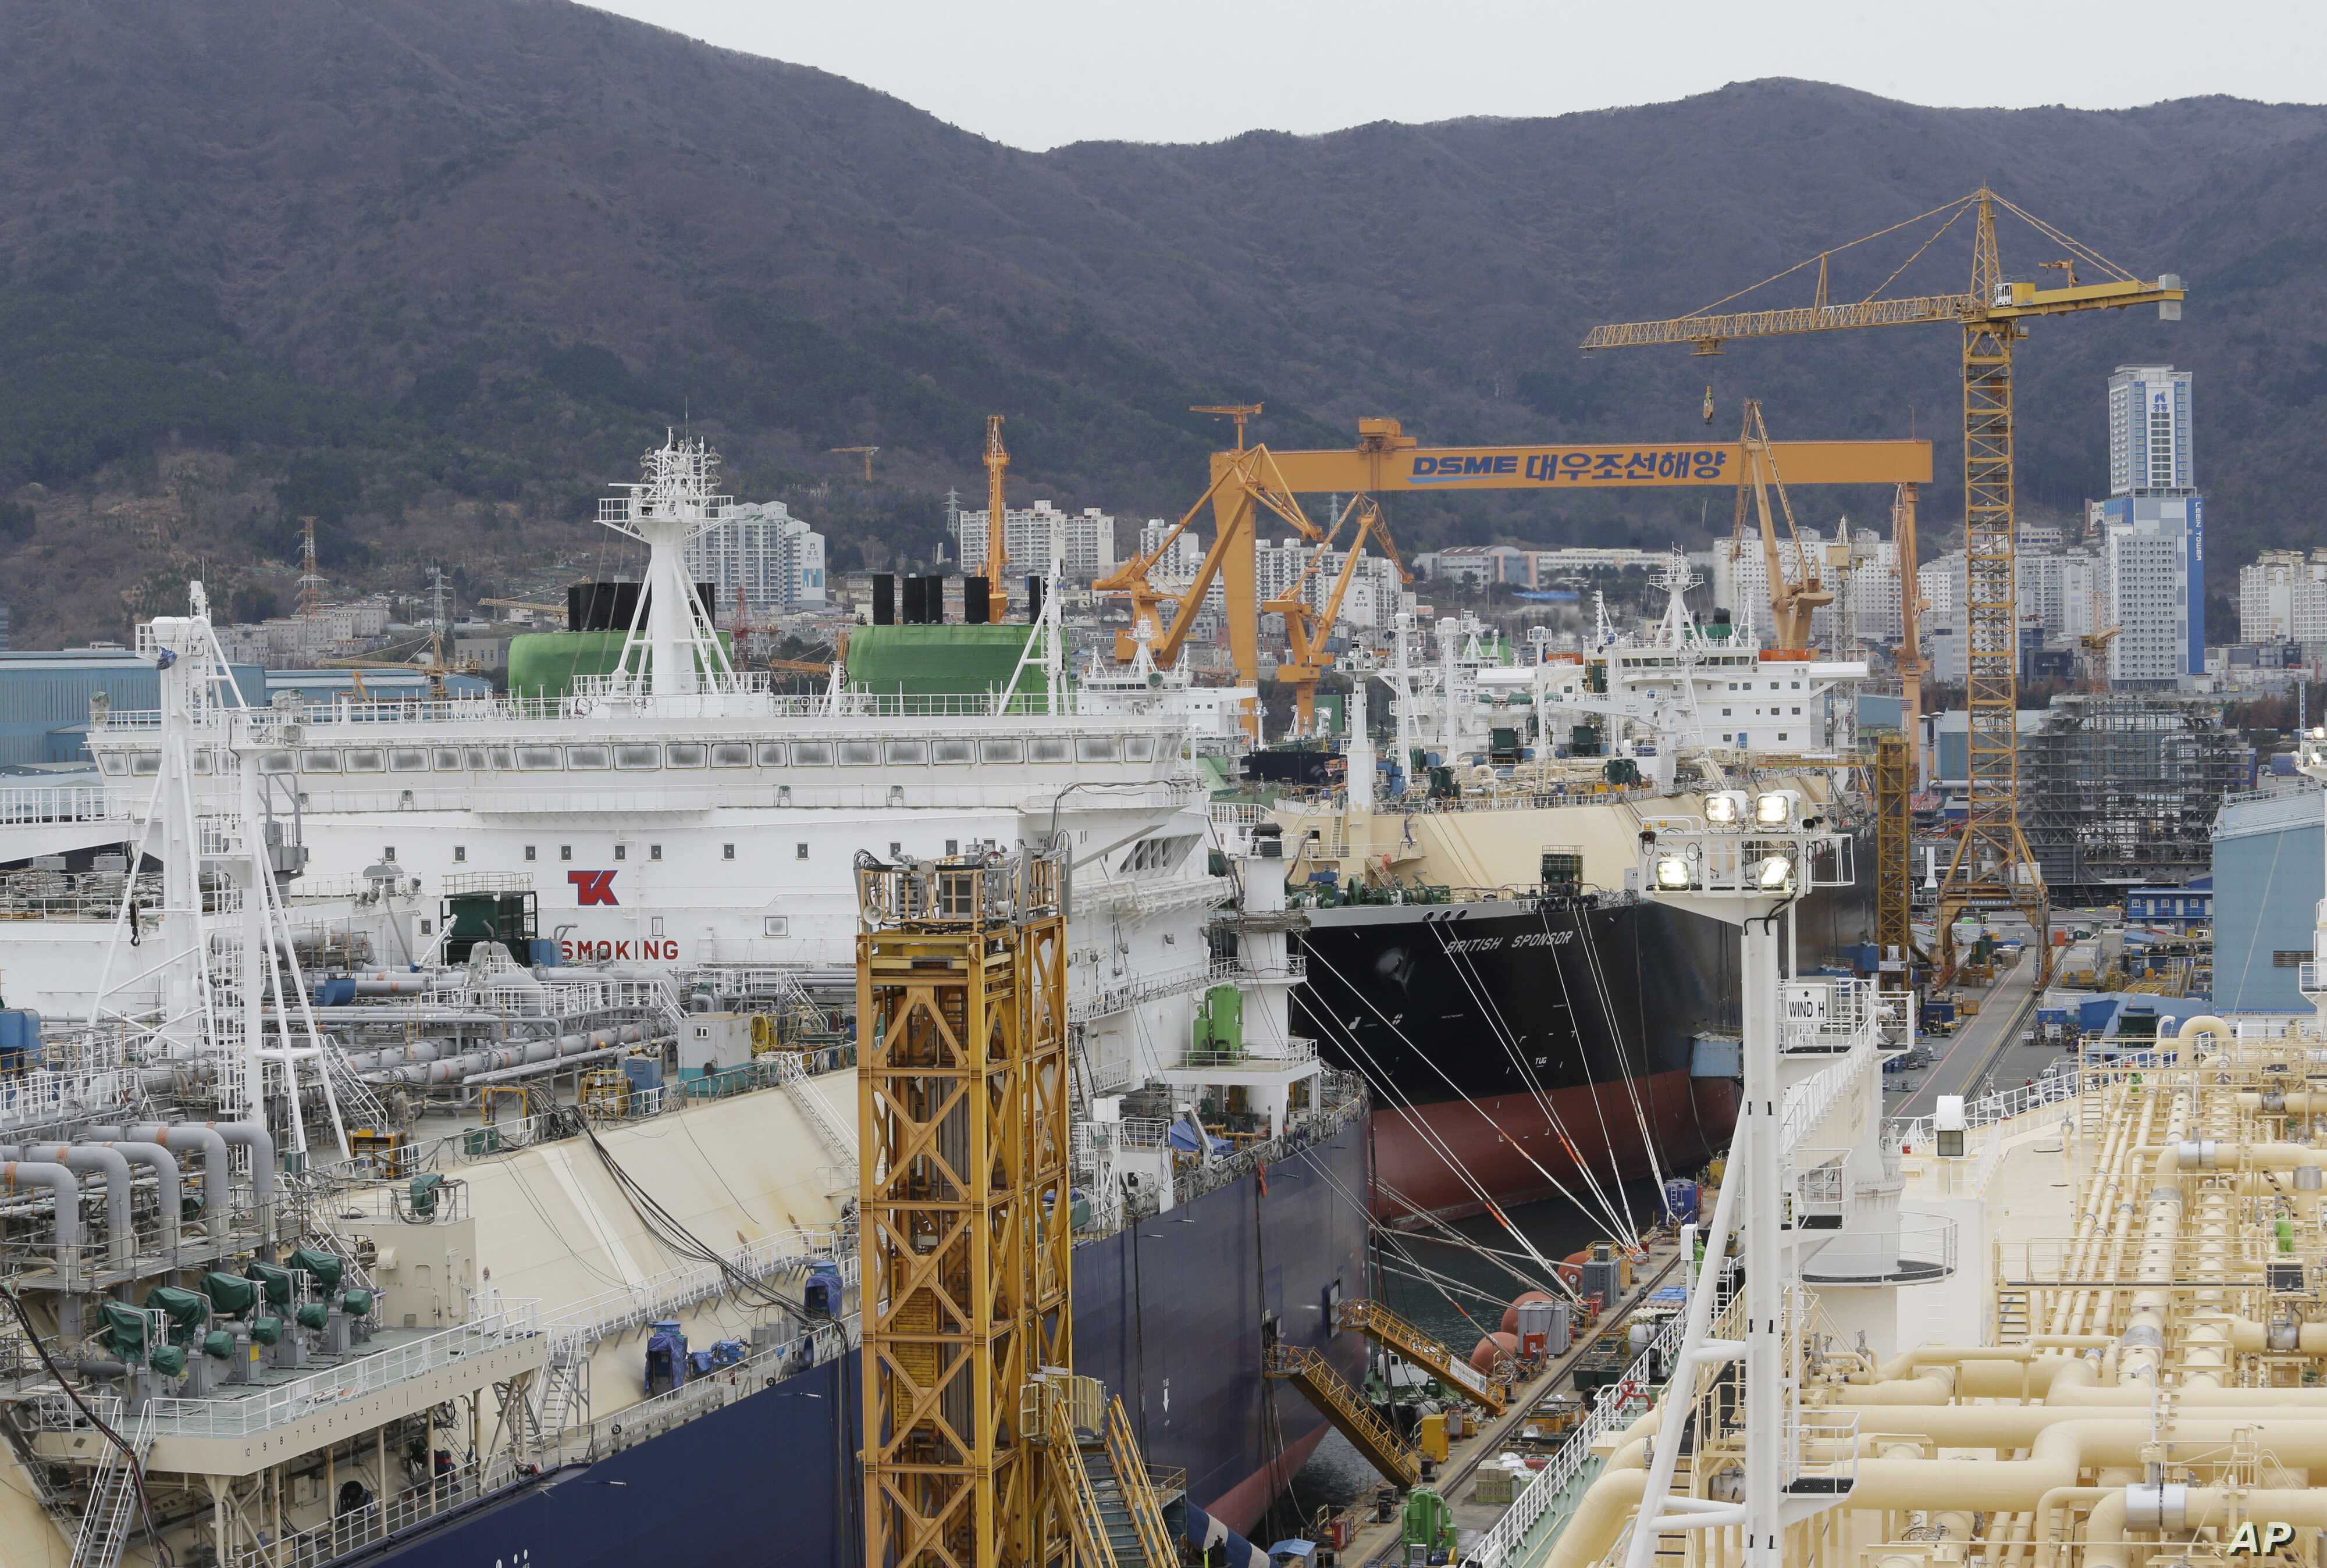 Large liquefied natural gas (LNG) carriers are being constructed at the Daewoo Shipbuilding and Marine Engineering facility in Geoje Island, South Korea, Dec. 7, 2018. South Korea's big three shipbuilders — Daewoo, Hyundai Heavy Industries and Sa...